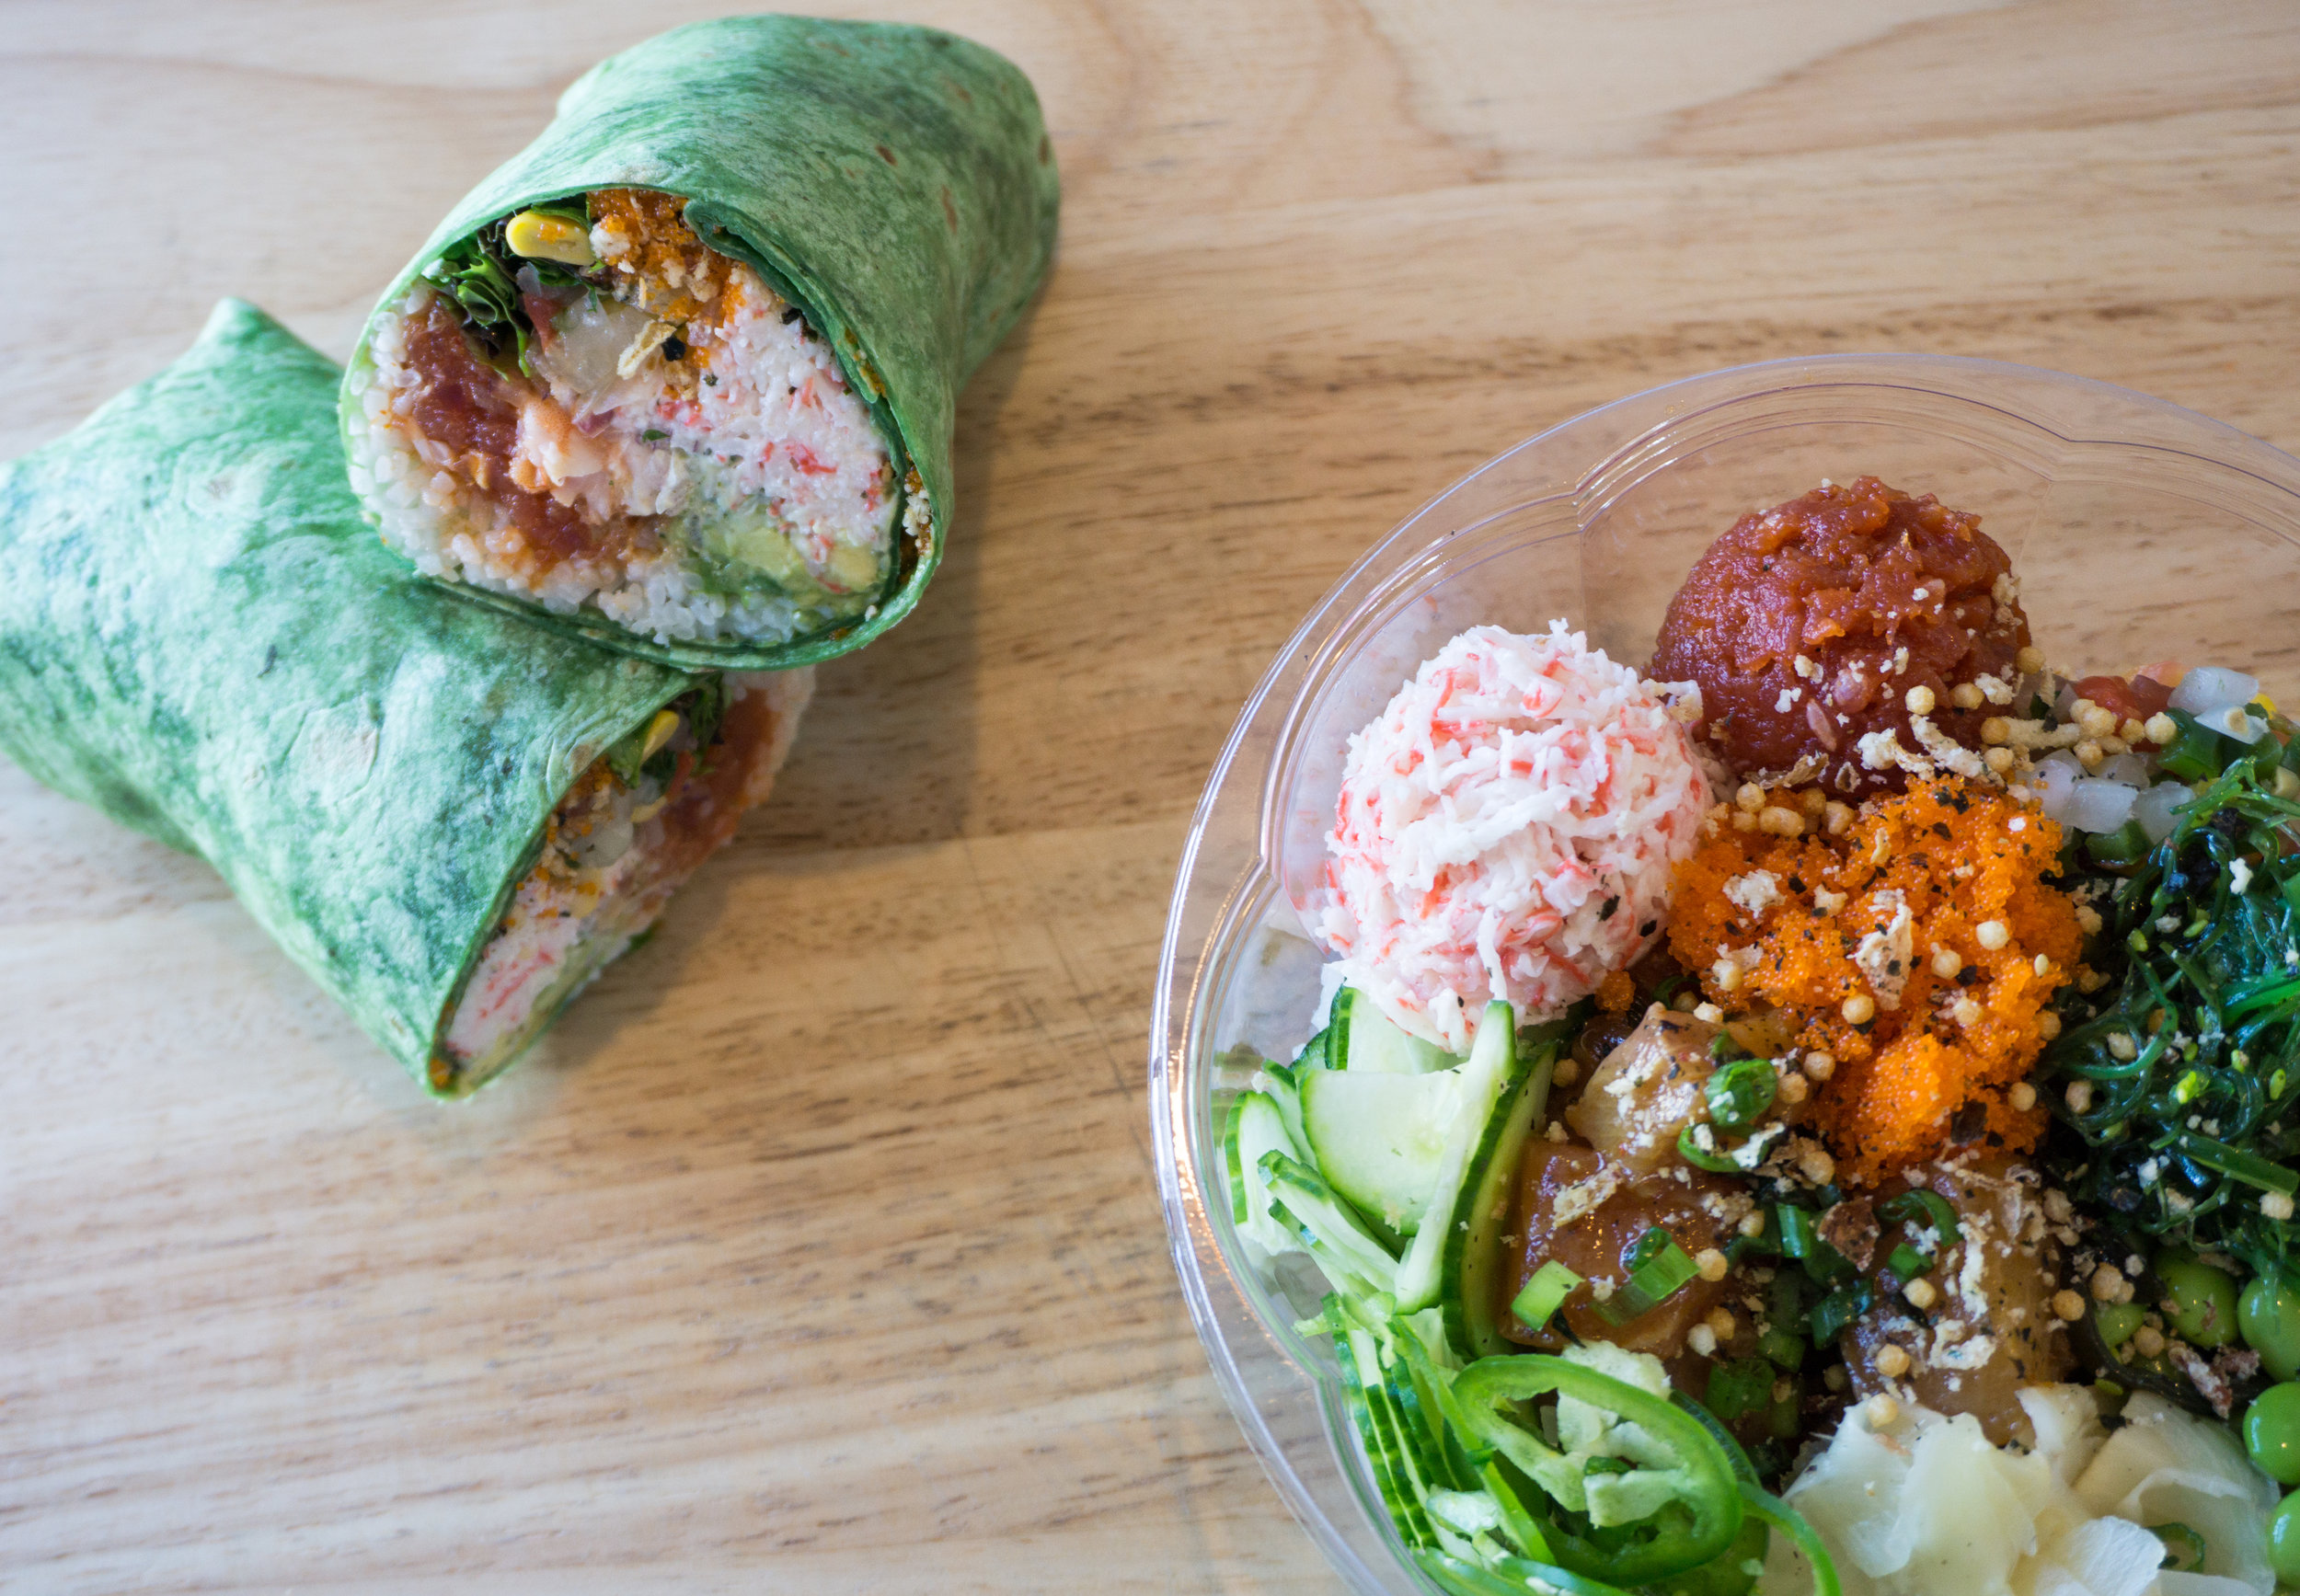 Poke+Bowl+&+Wrap.jpeg